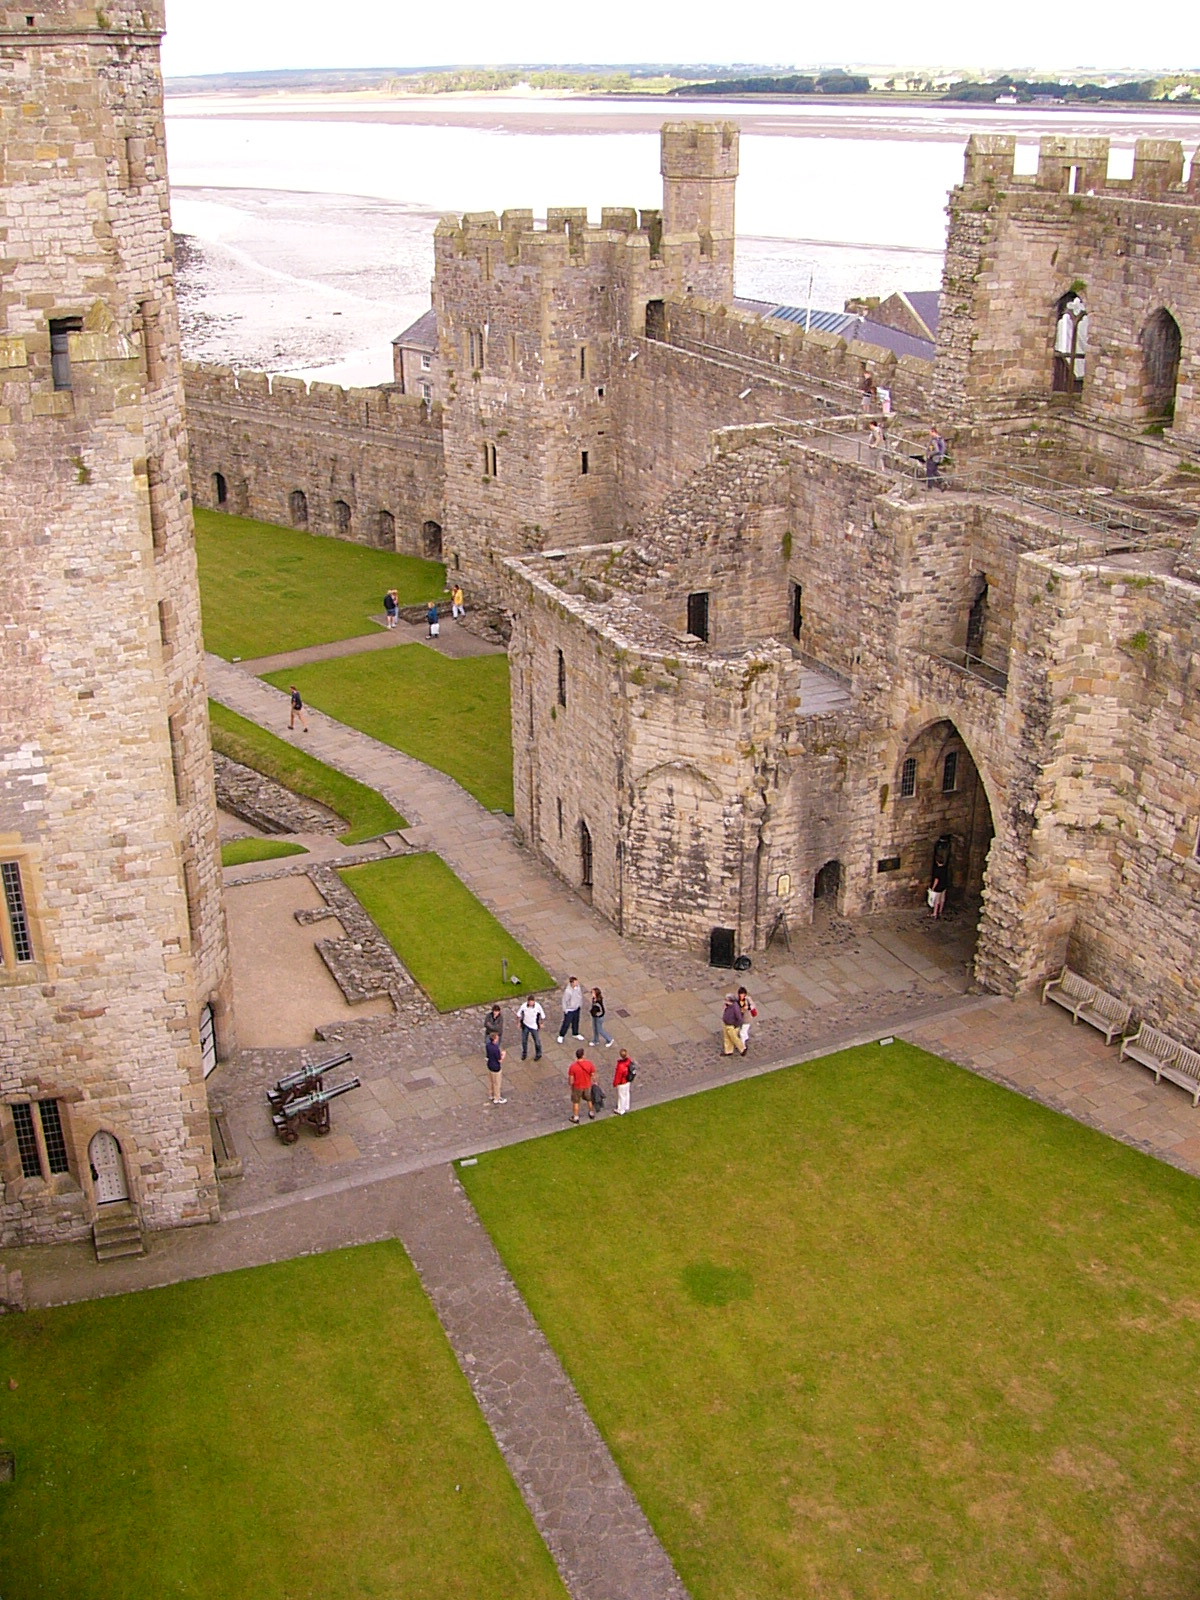 A view of Caernarfon Castle from one of its towers in northern Wales.